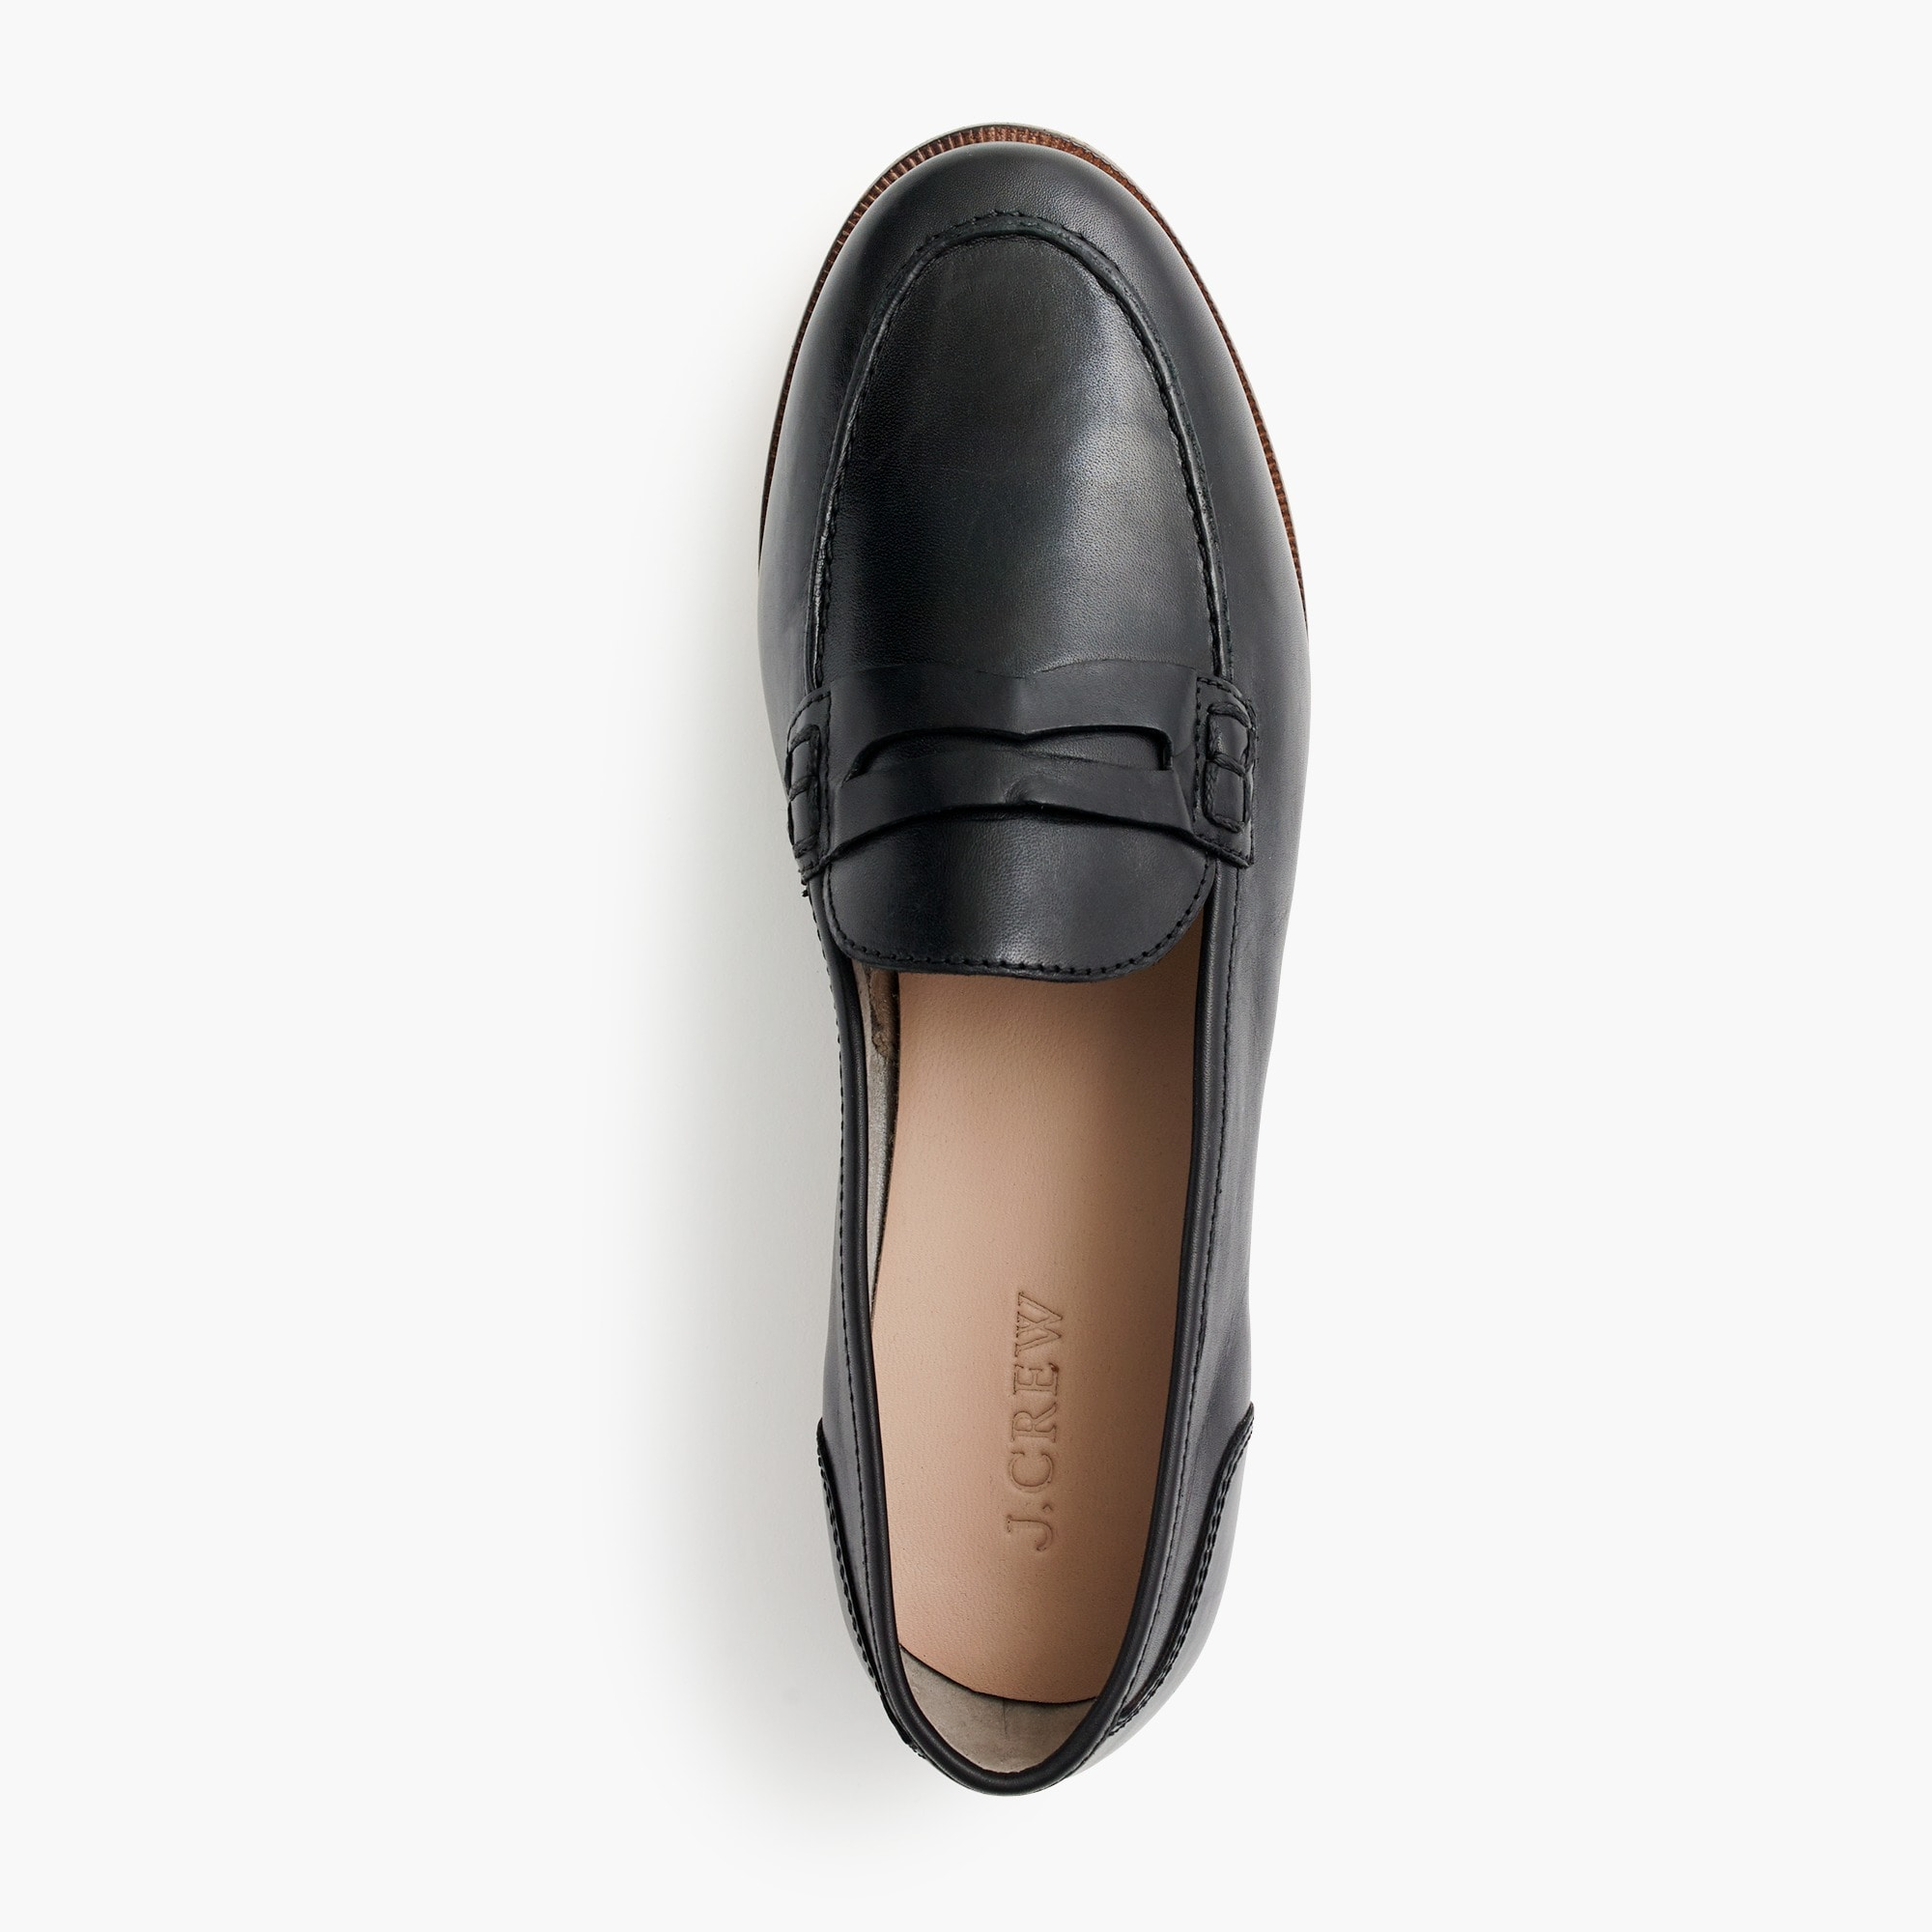 ryan penny loafers in leather - women's footwear